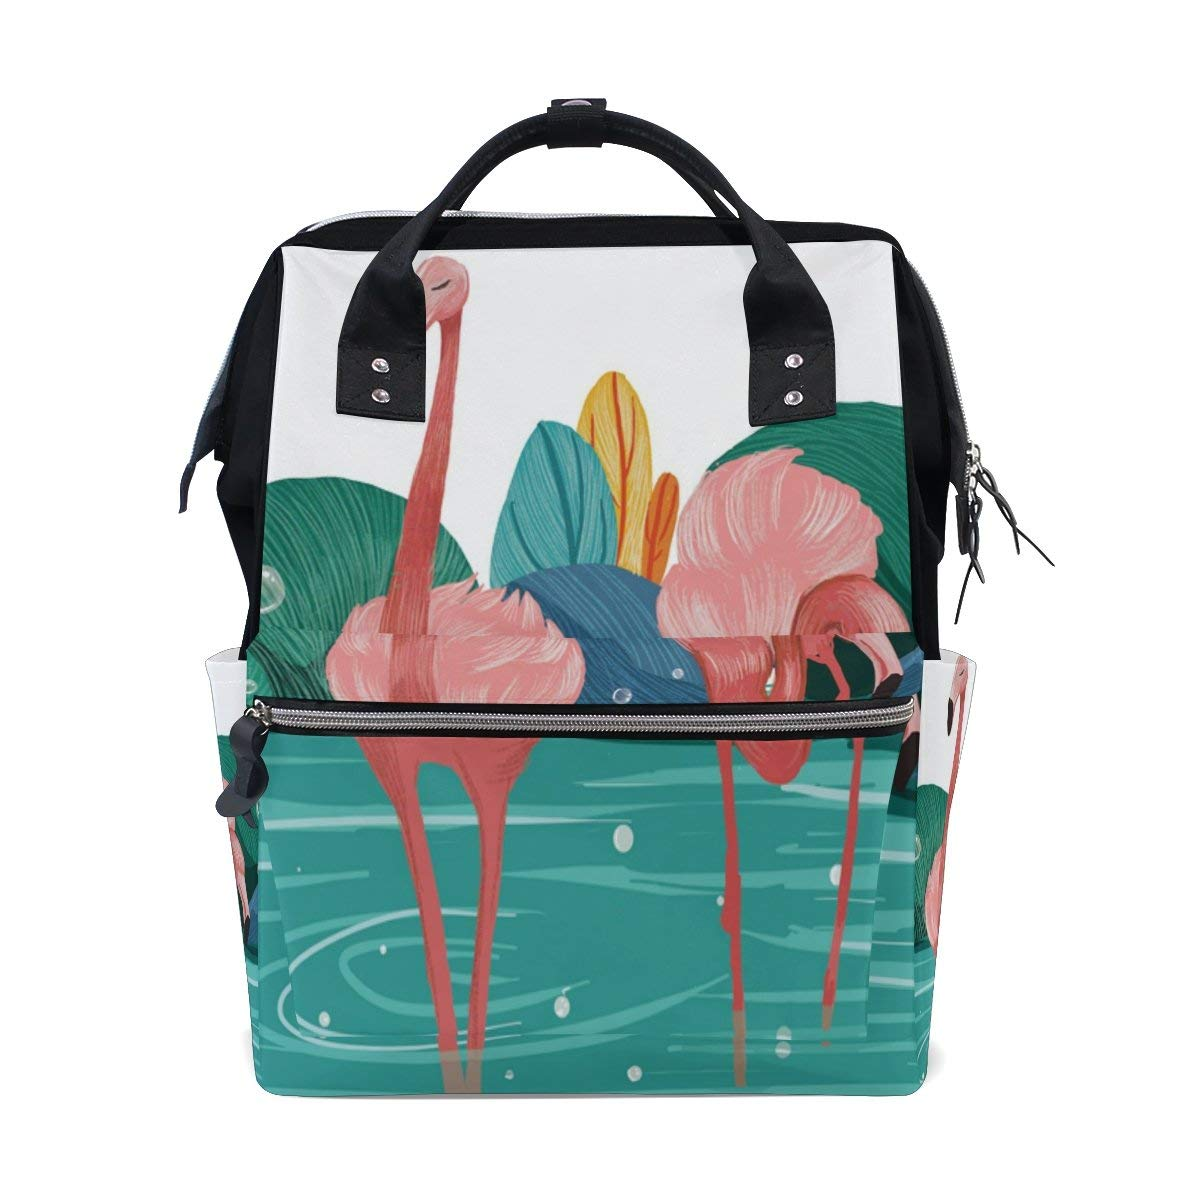 Diaper Bags Backpack Purse Mummy Backpack Fashion Mummy Maternity Nappy Bag Cool Cute Travel Backpack Laptop Backpack with Fantasy Meteor Daypack for Women Girls Kids